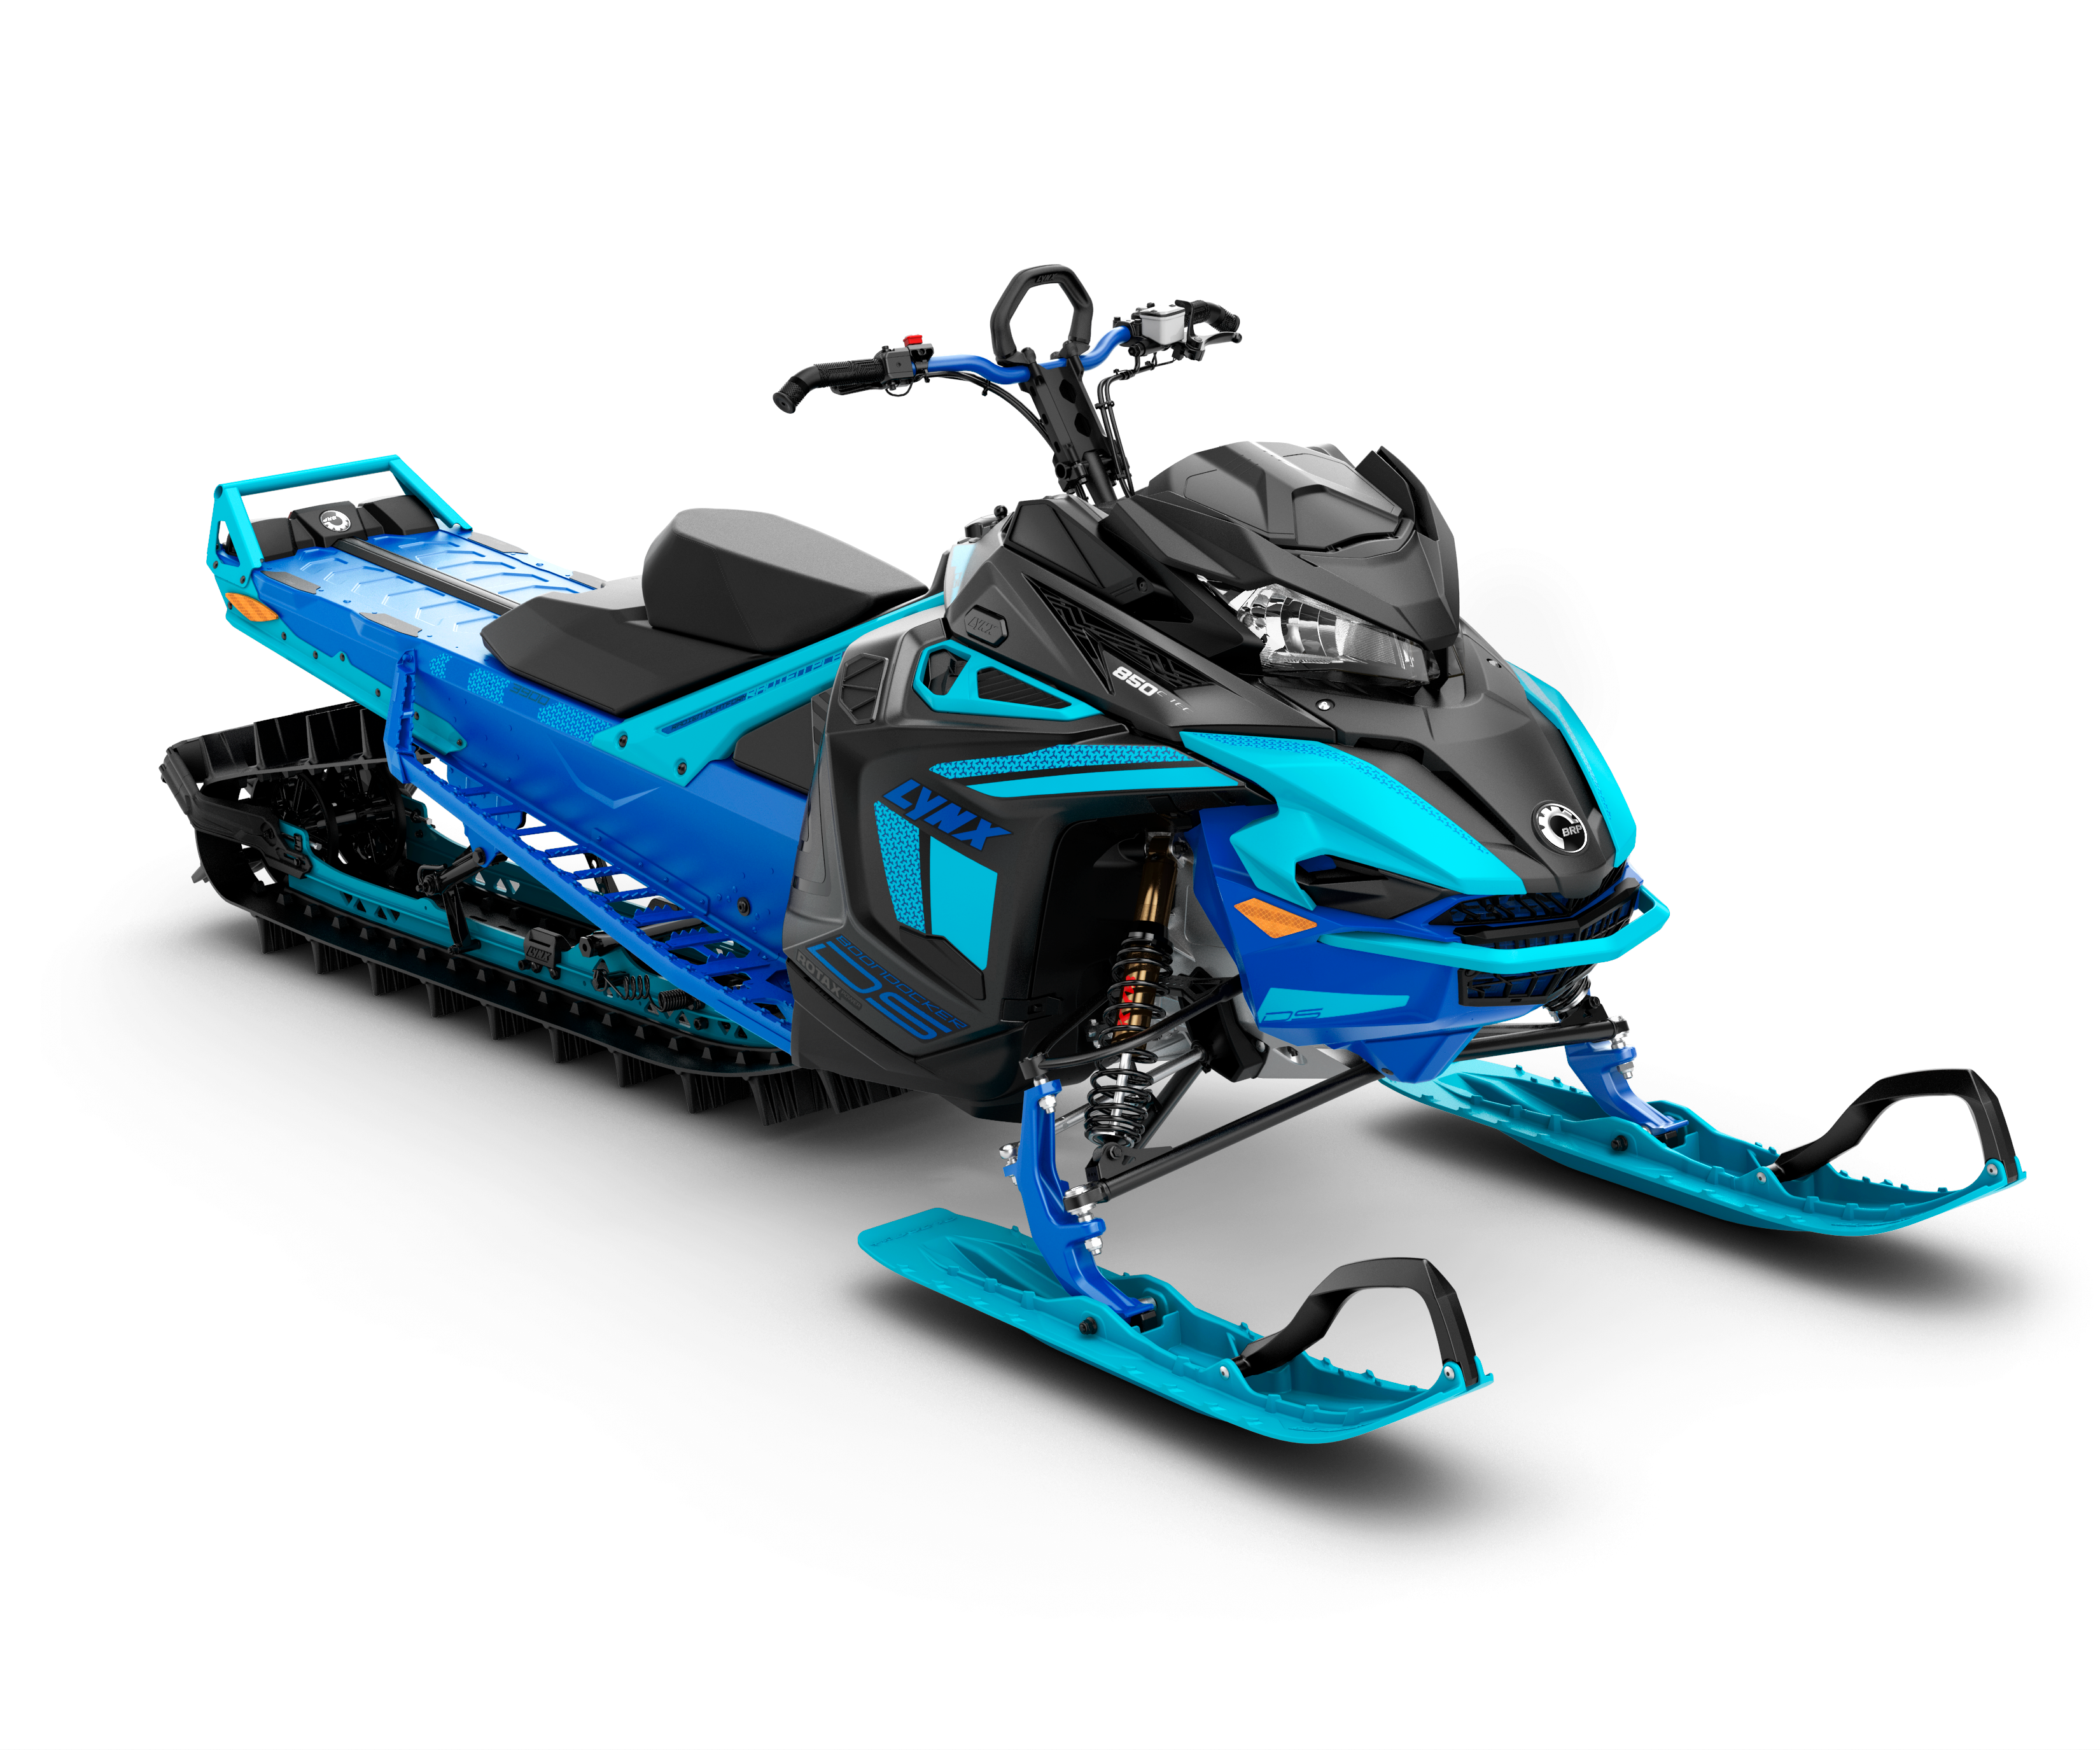 Boondocker Snowmobile Modell 2021